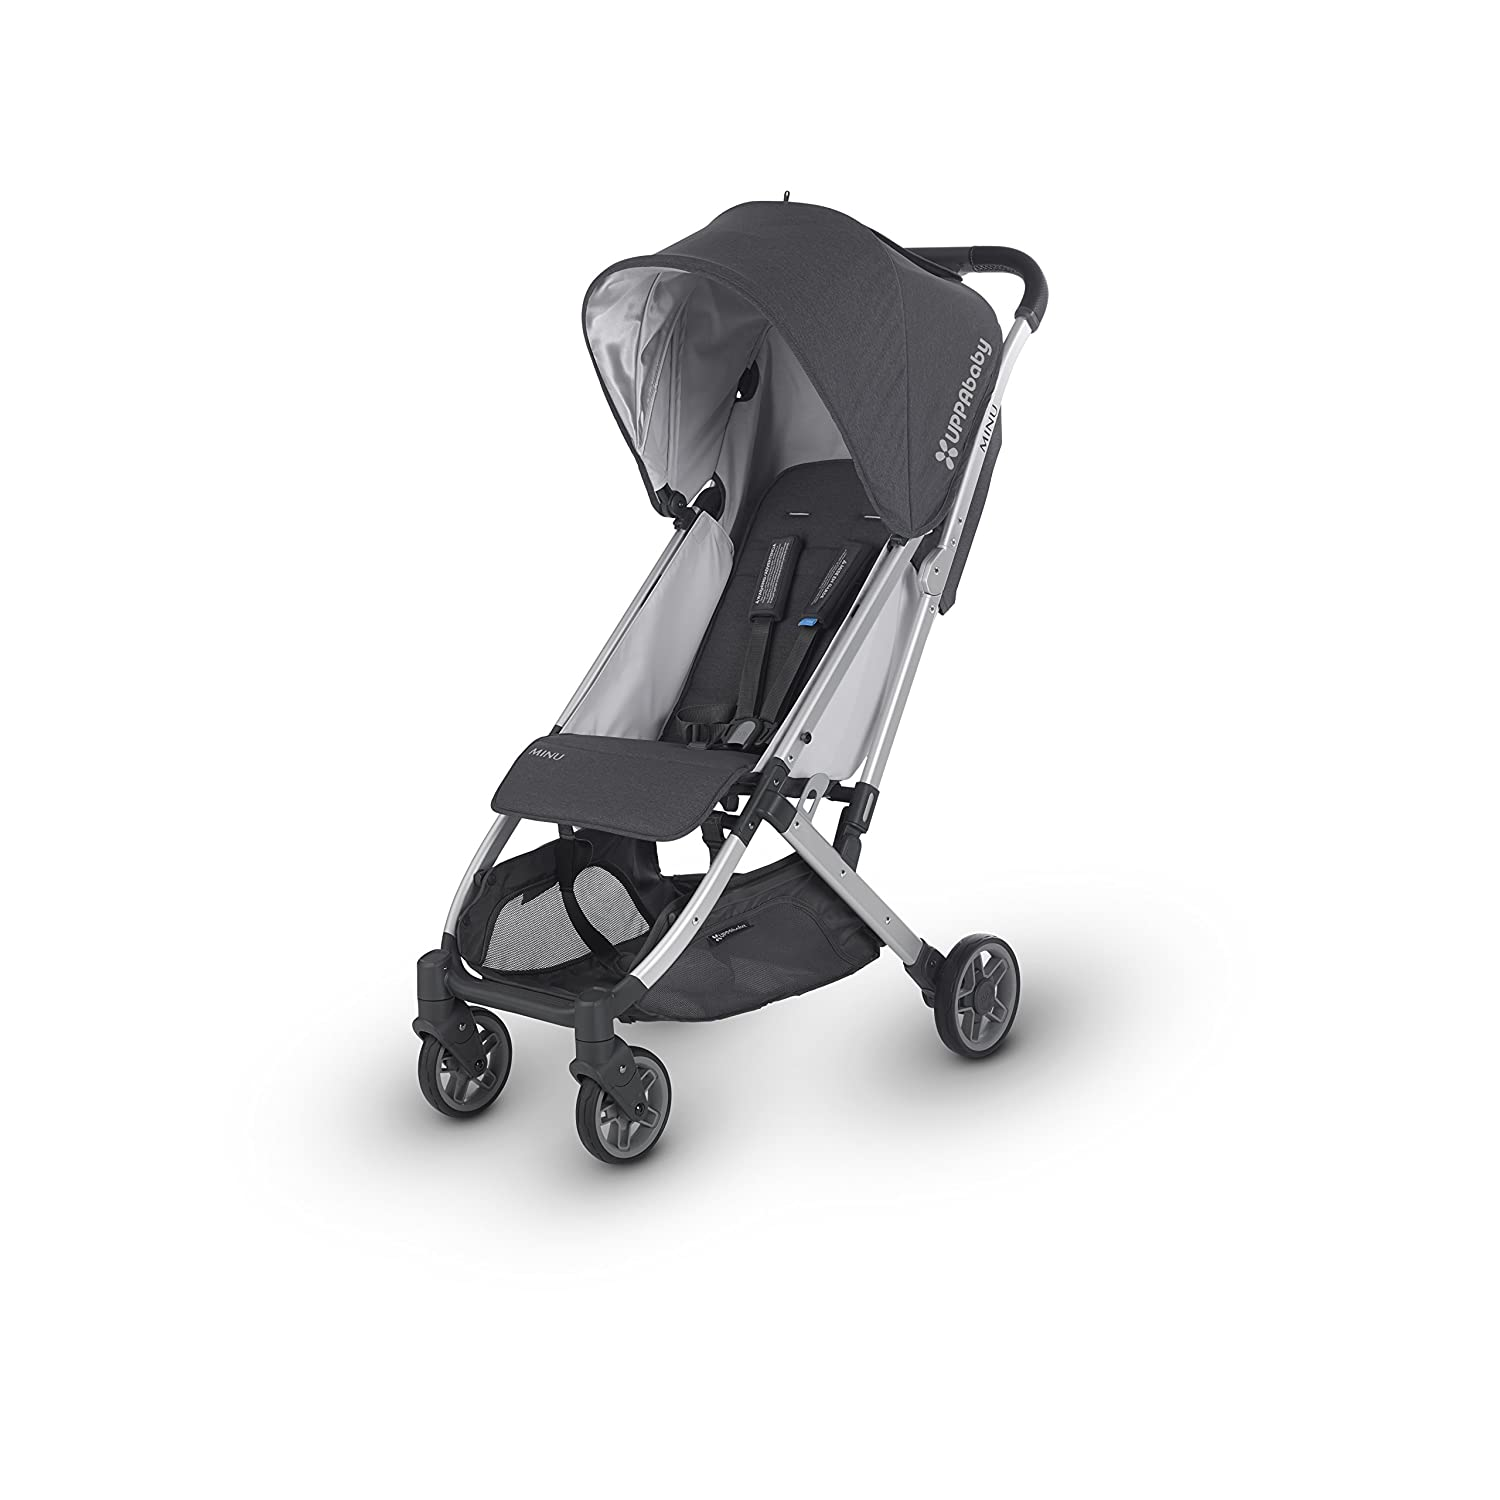 Best Lightweight stroller for 3 year old baby-UPPAbaby MINU